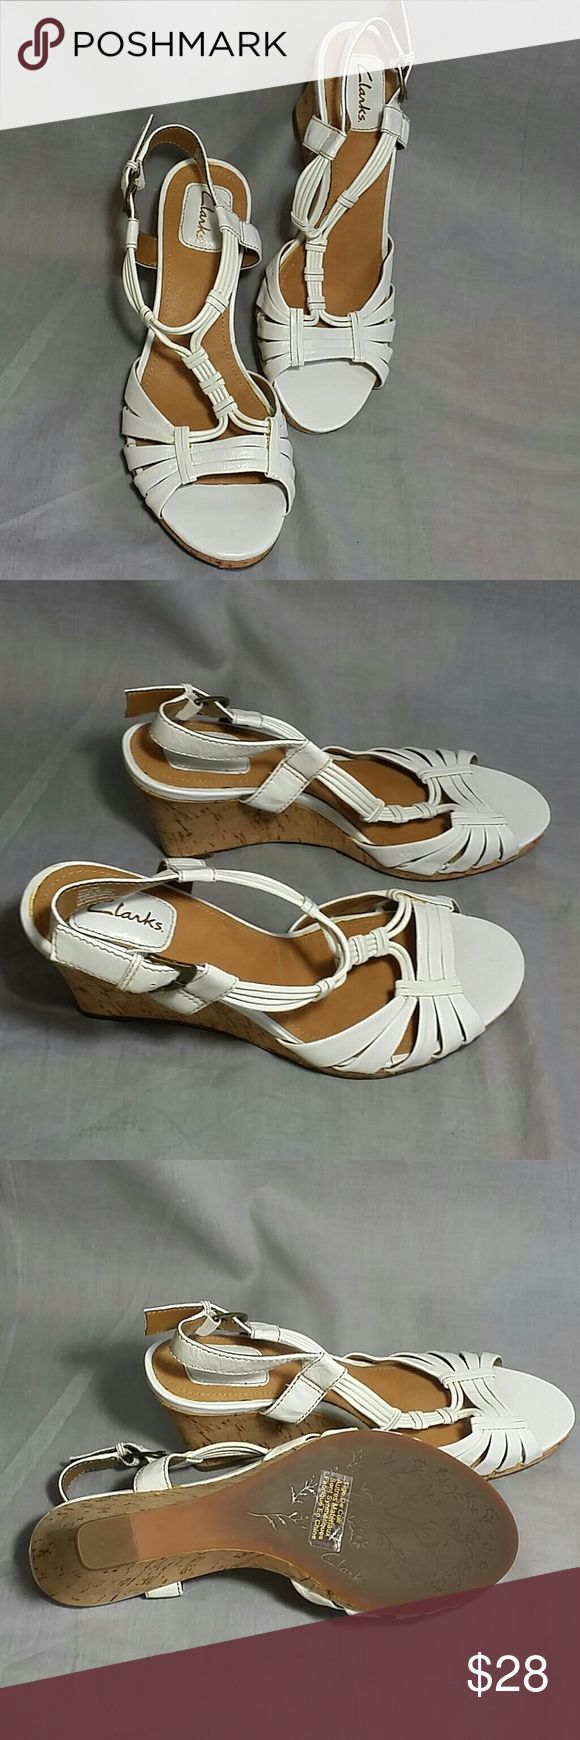 """Clarks Sandals Size 7 M Leather Ankle Strap Heels Heels 3"""" item is in a good condition NO PETS AND SMOKE FREE HOME. Clarks  Shoes Sandals"""